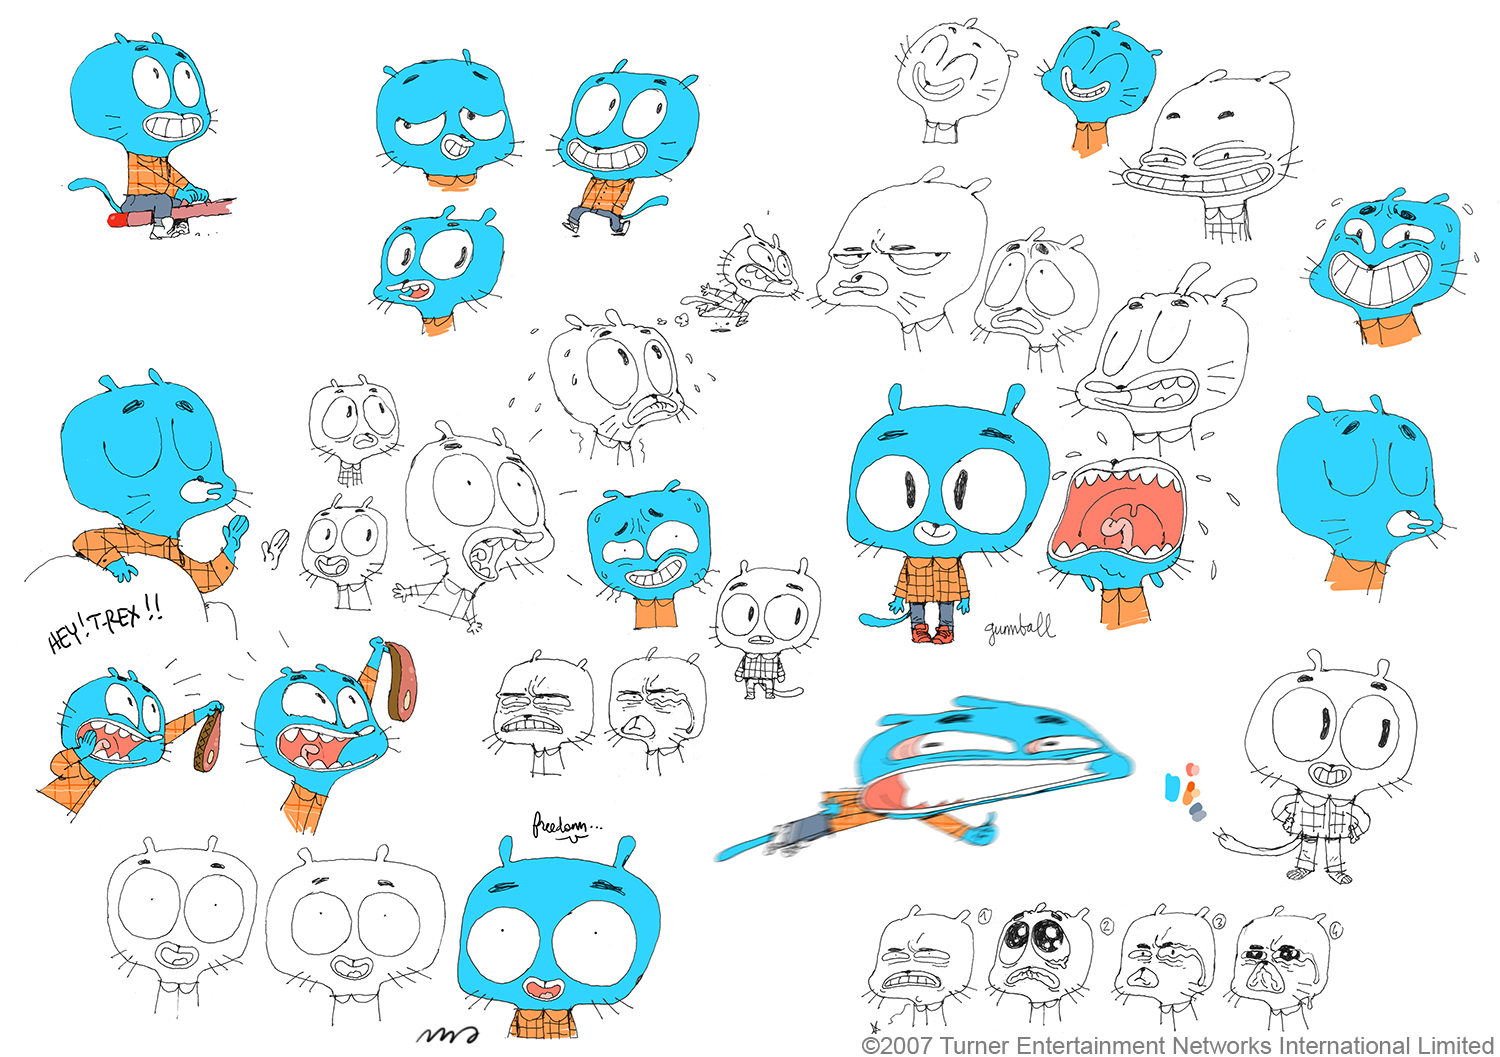 smarc-gumball-page2.jpg